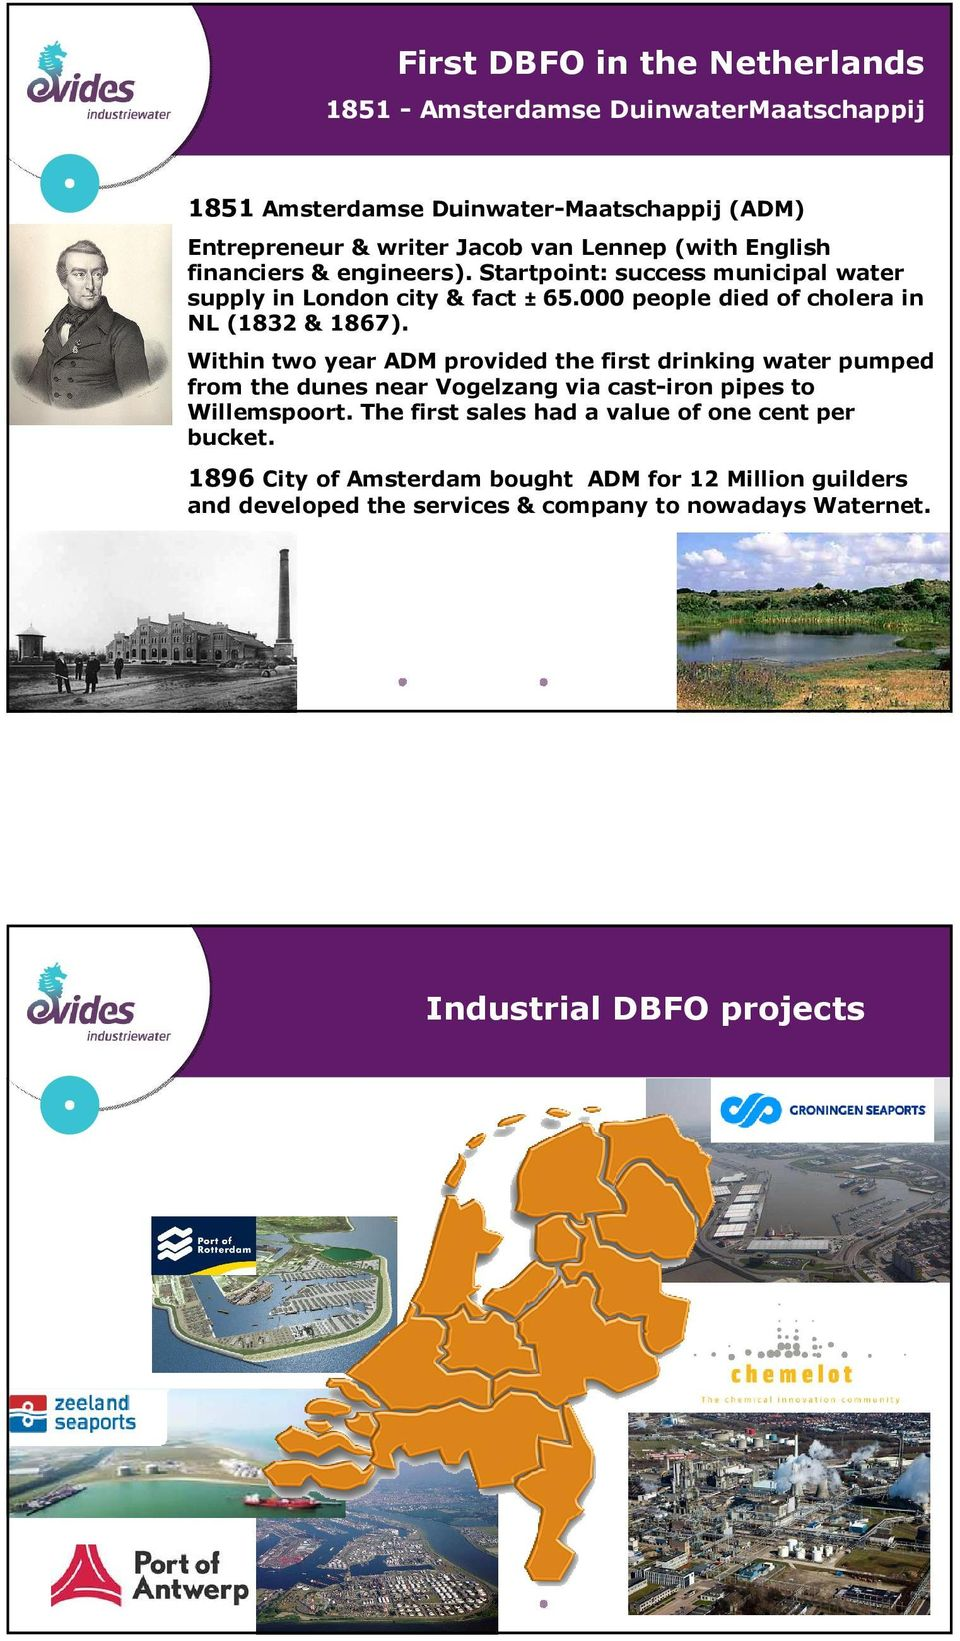 Within two year ADM provided the first drinking pumped from the dunes near Vogelzang via cast-iron pipes to Willemspoort.